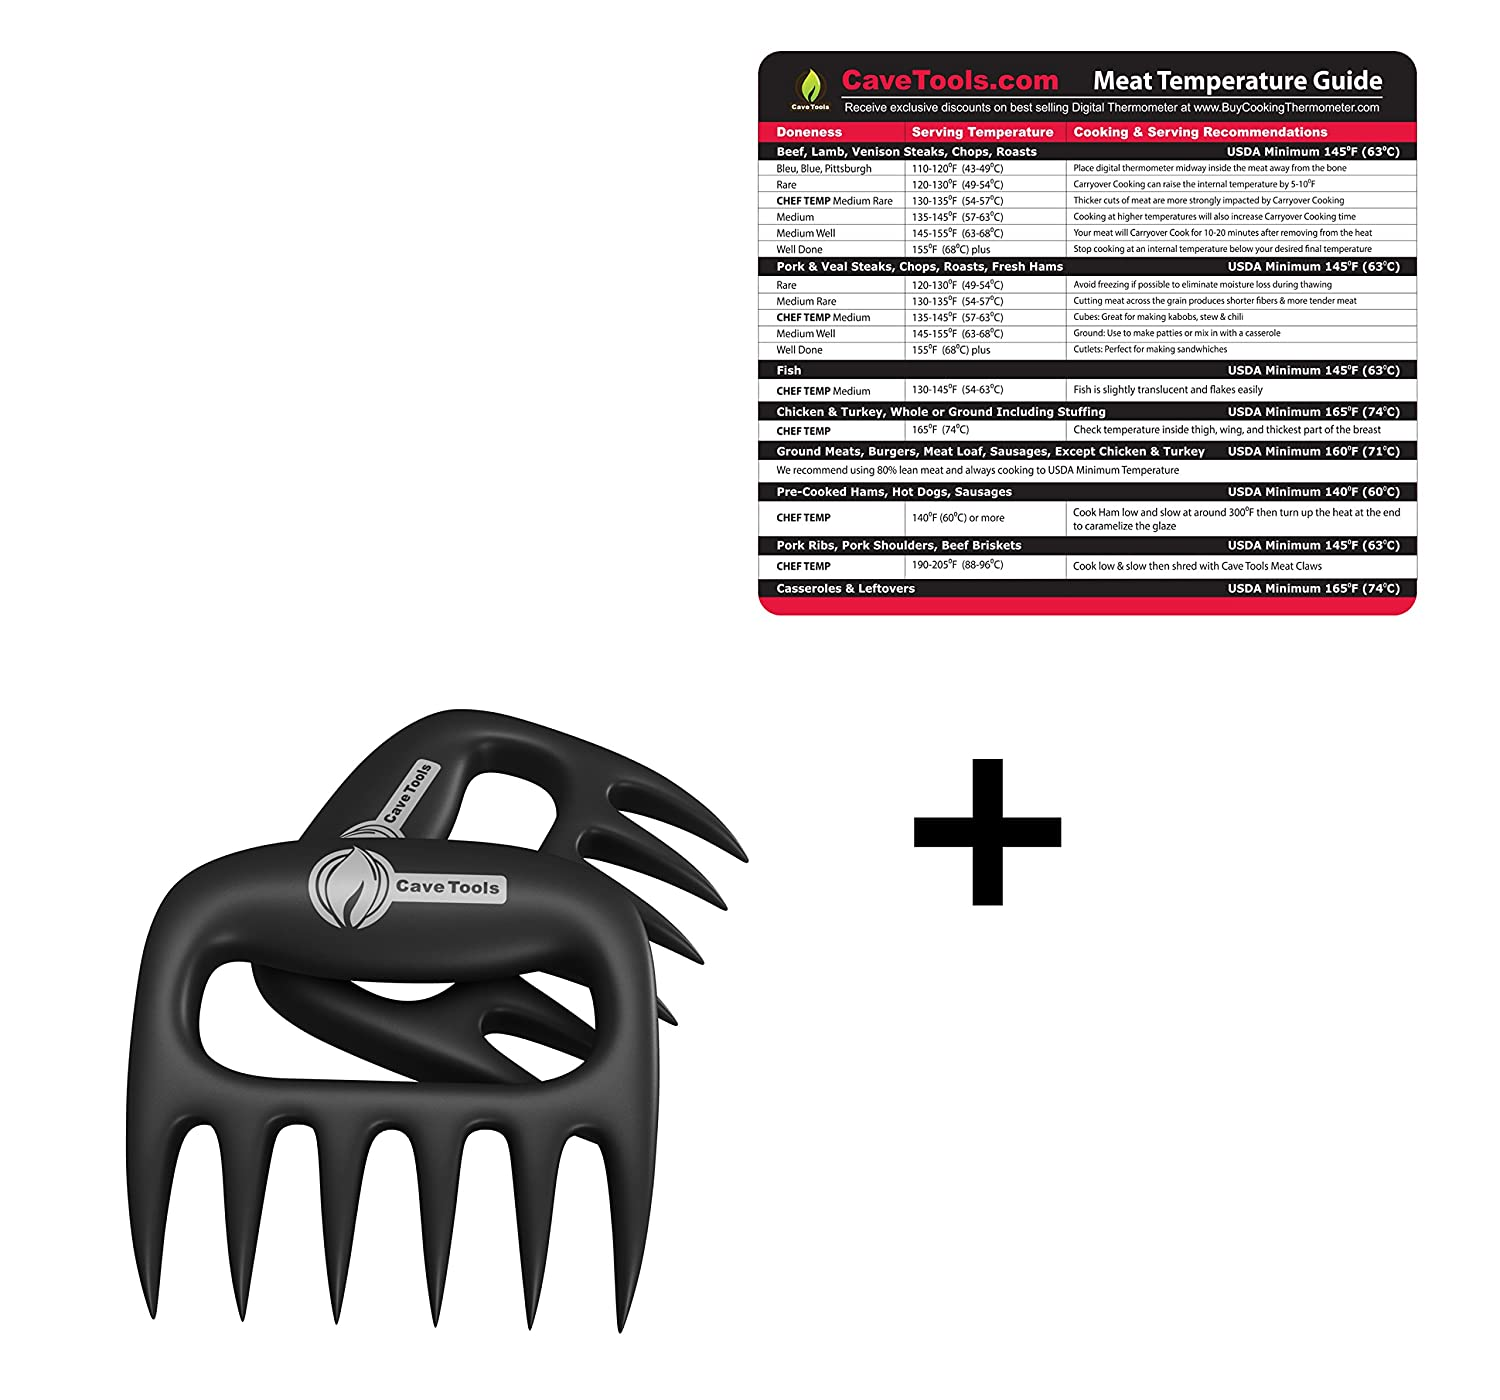 Temperature Magnet (lg) + Pulled Pork Shredder Claws - STRONGEST BBQ MEAT FORKS - Shredding Handling & Carving Food - For Pulling Brisket from Grill Smoker or Slow Cooker - BPA Free Barbecue Paws